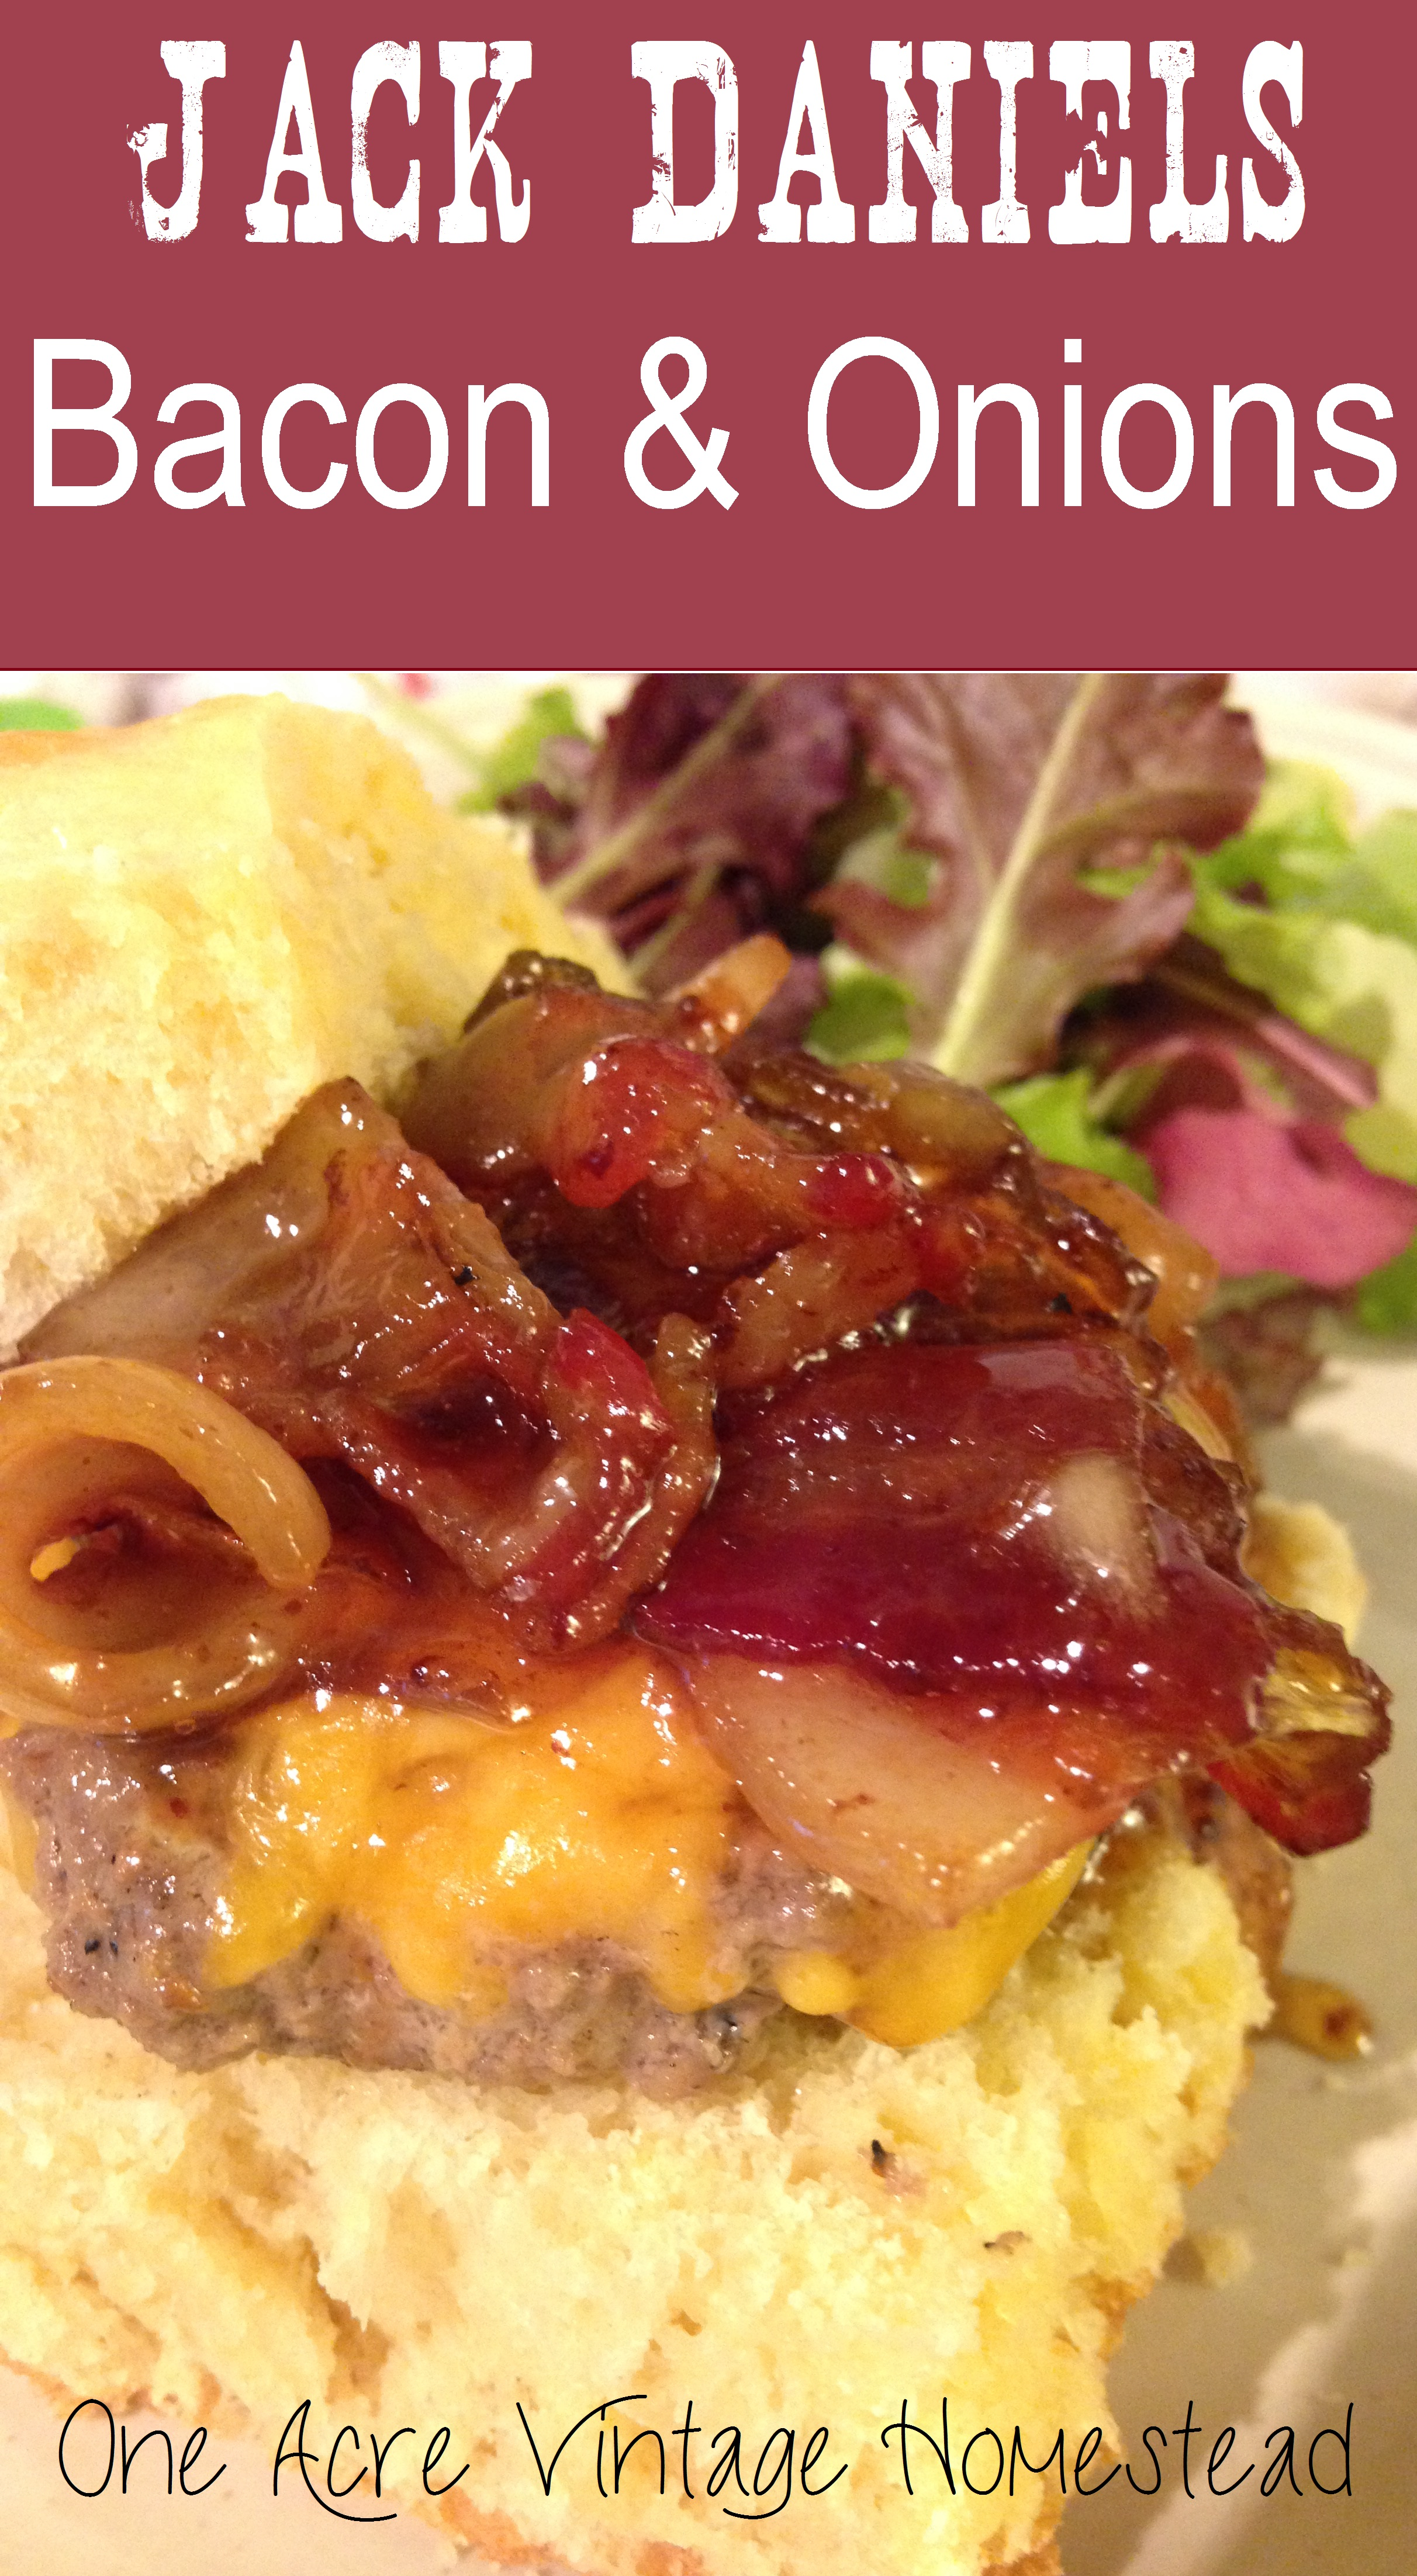 Jack daniels bacon onion burger topper very similar to the well known tgi fridays jack daniels glaze this recipe uses jack daniels whiskey but is much faster and easier to make forumfinder Images